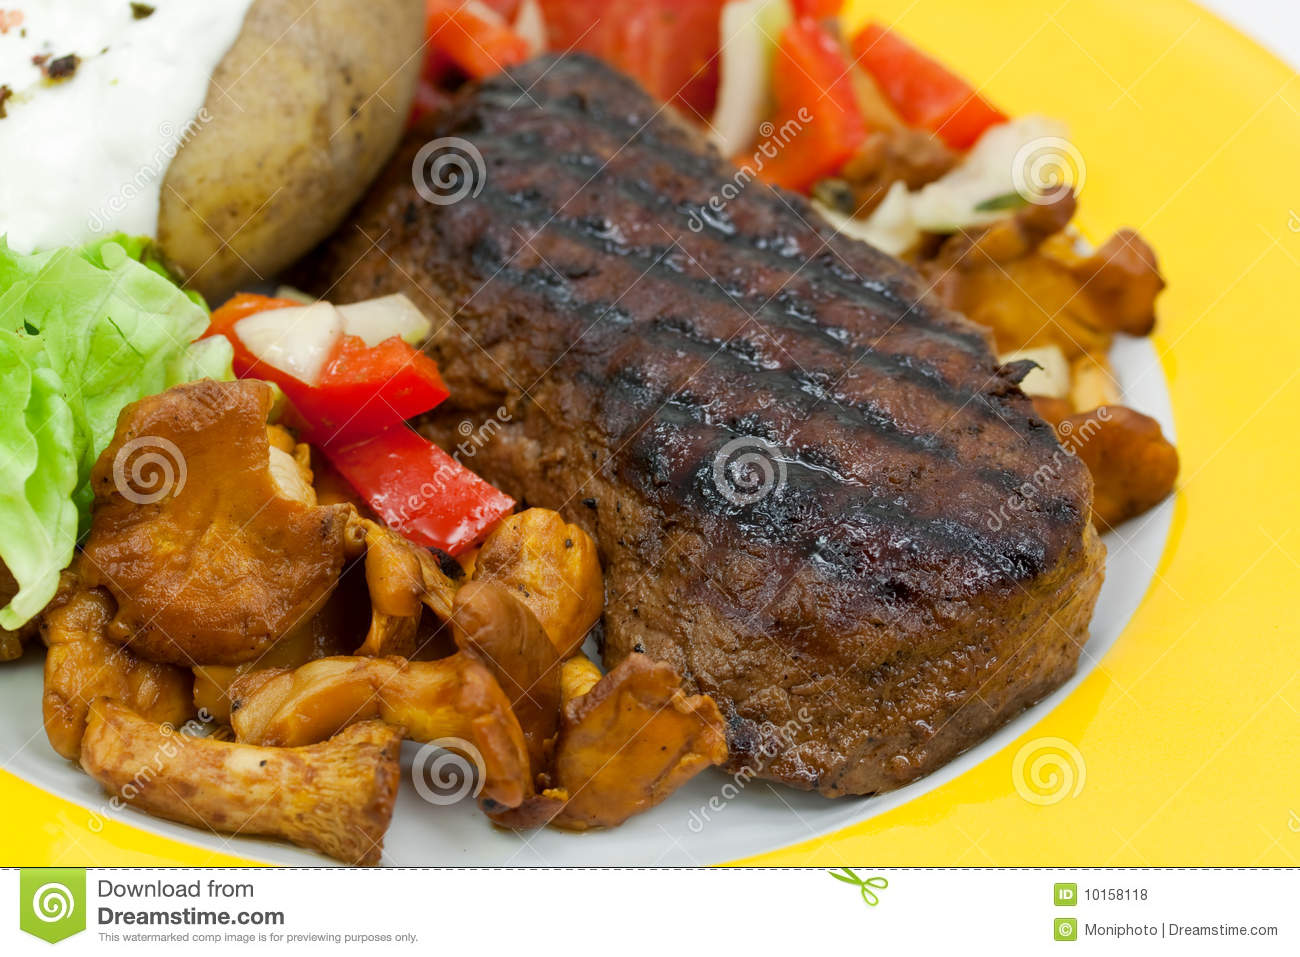 Sirloin strip steak with baked potato and chantere